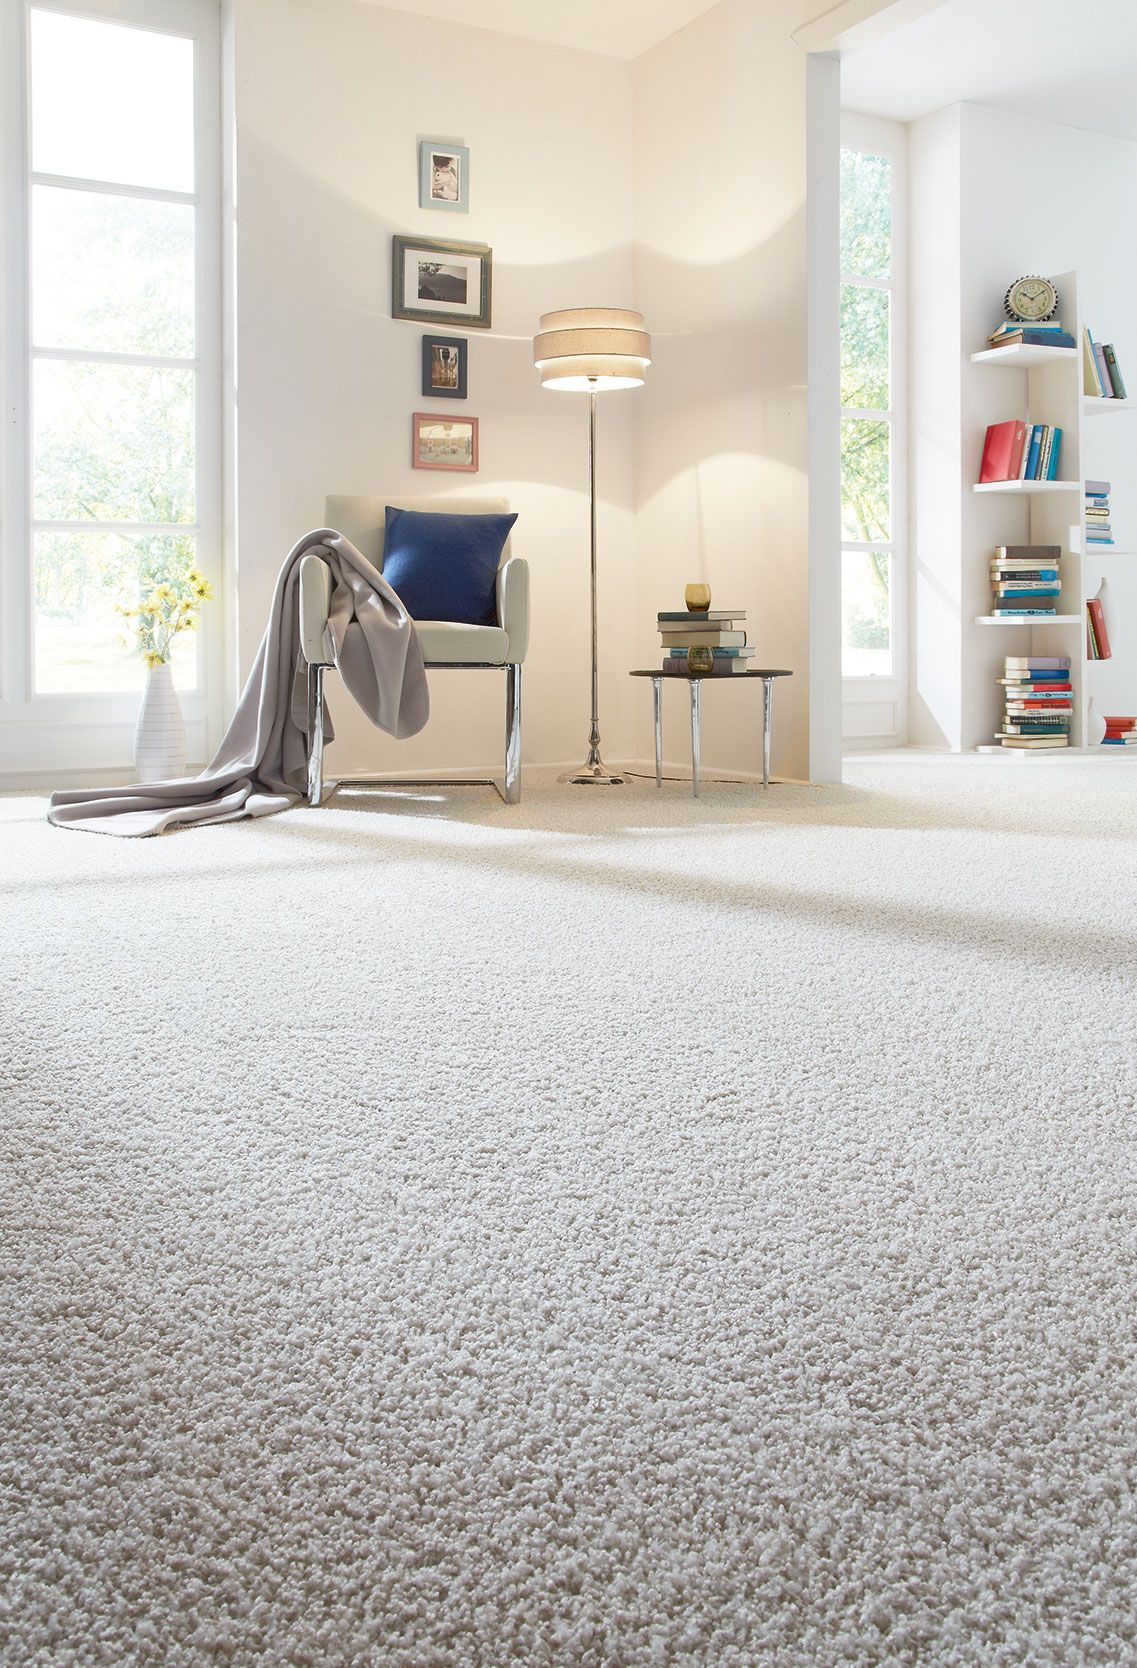 Carpet Particularly Well Suited For Allergy Sufferers Carpet Allergy Sufferers Fe Carpet Particularly In 2020 Carpet Design Stylish Carpets Living Styles